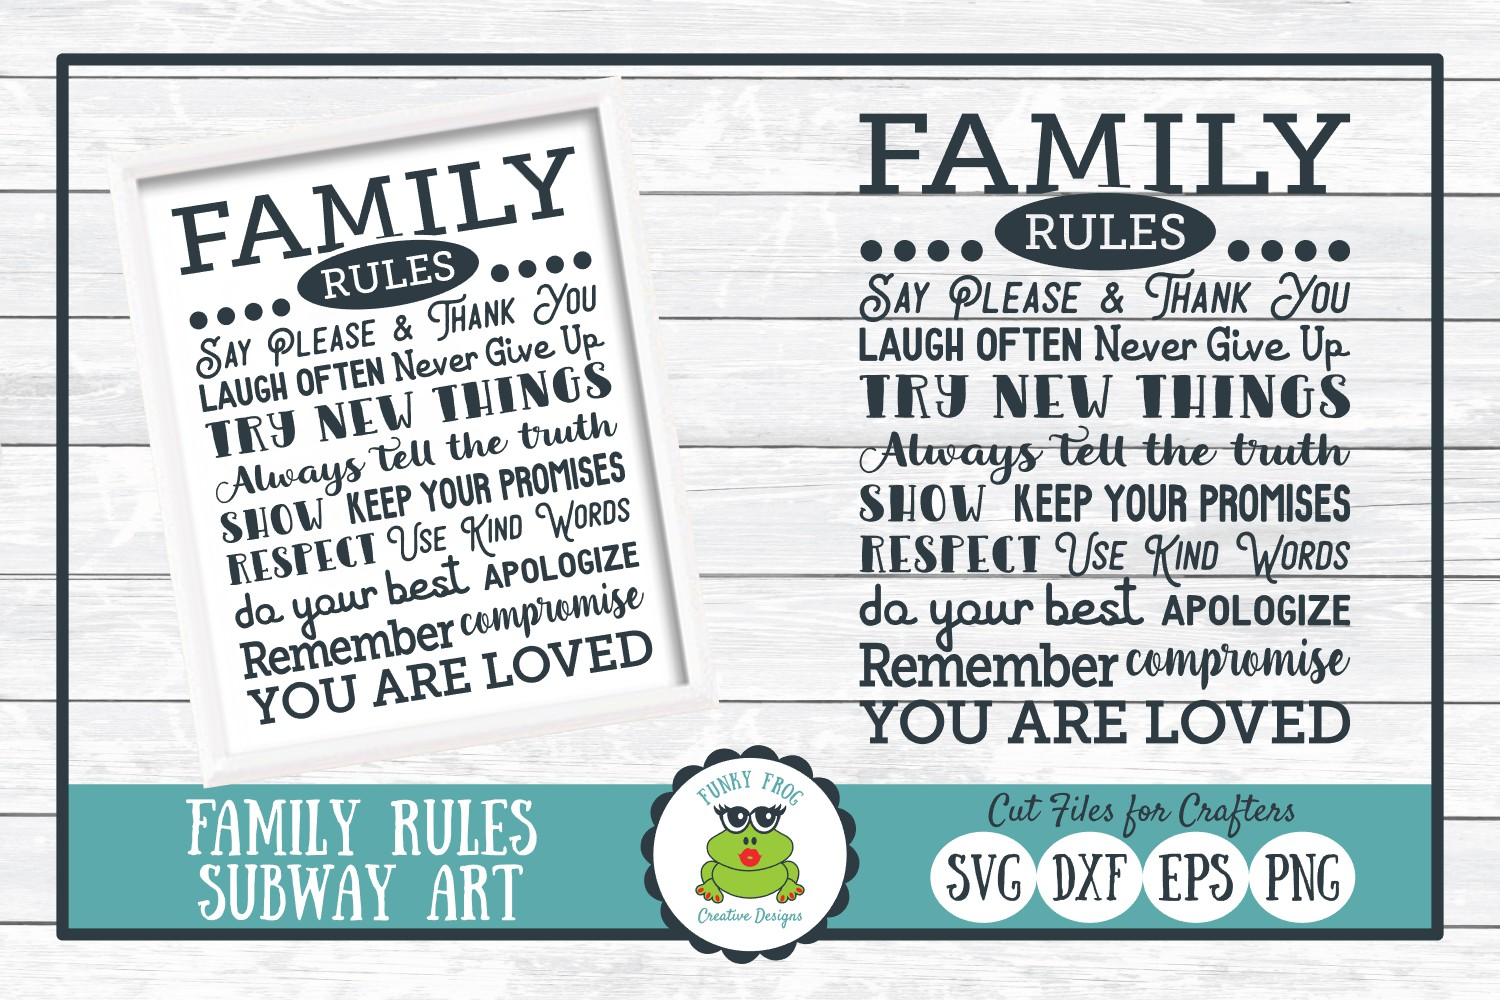 Download Free Family Rules Subway Art Graphic By Funkyfrogcreativedesigns for Cricut Explore, Silhouette and other cutting machines.